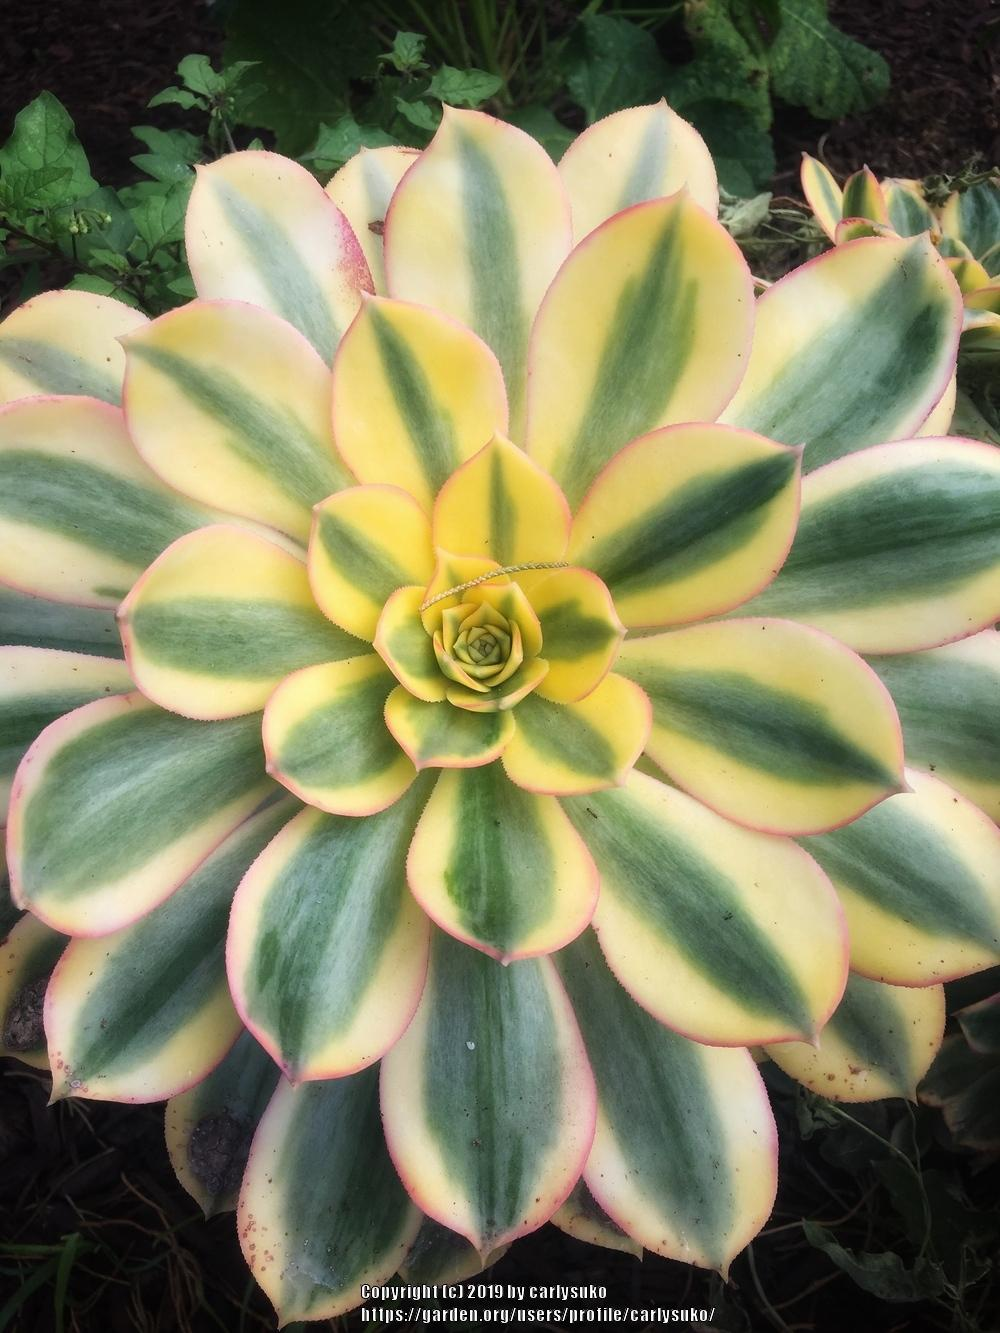 Photo of Aeonium (Aeonium decorum 'Sunburst') uploaded by carlysuko